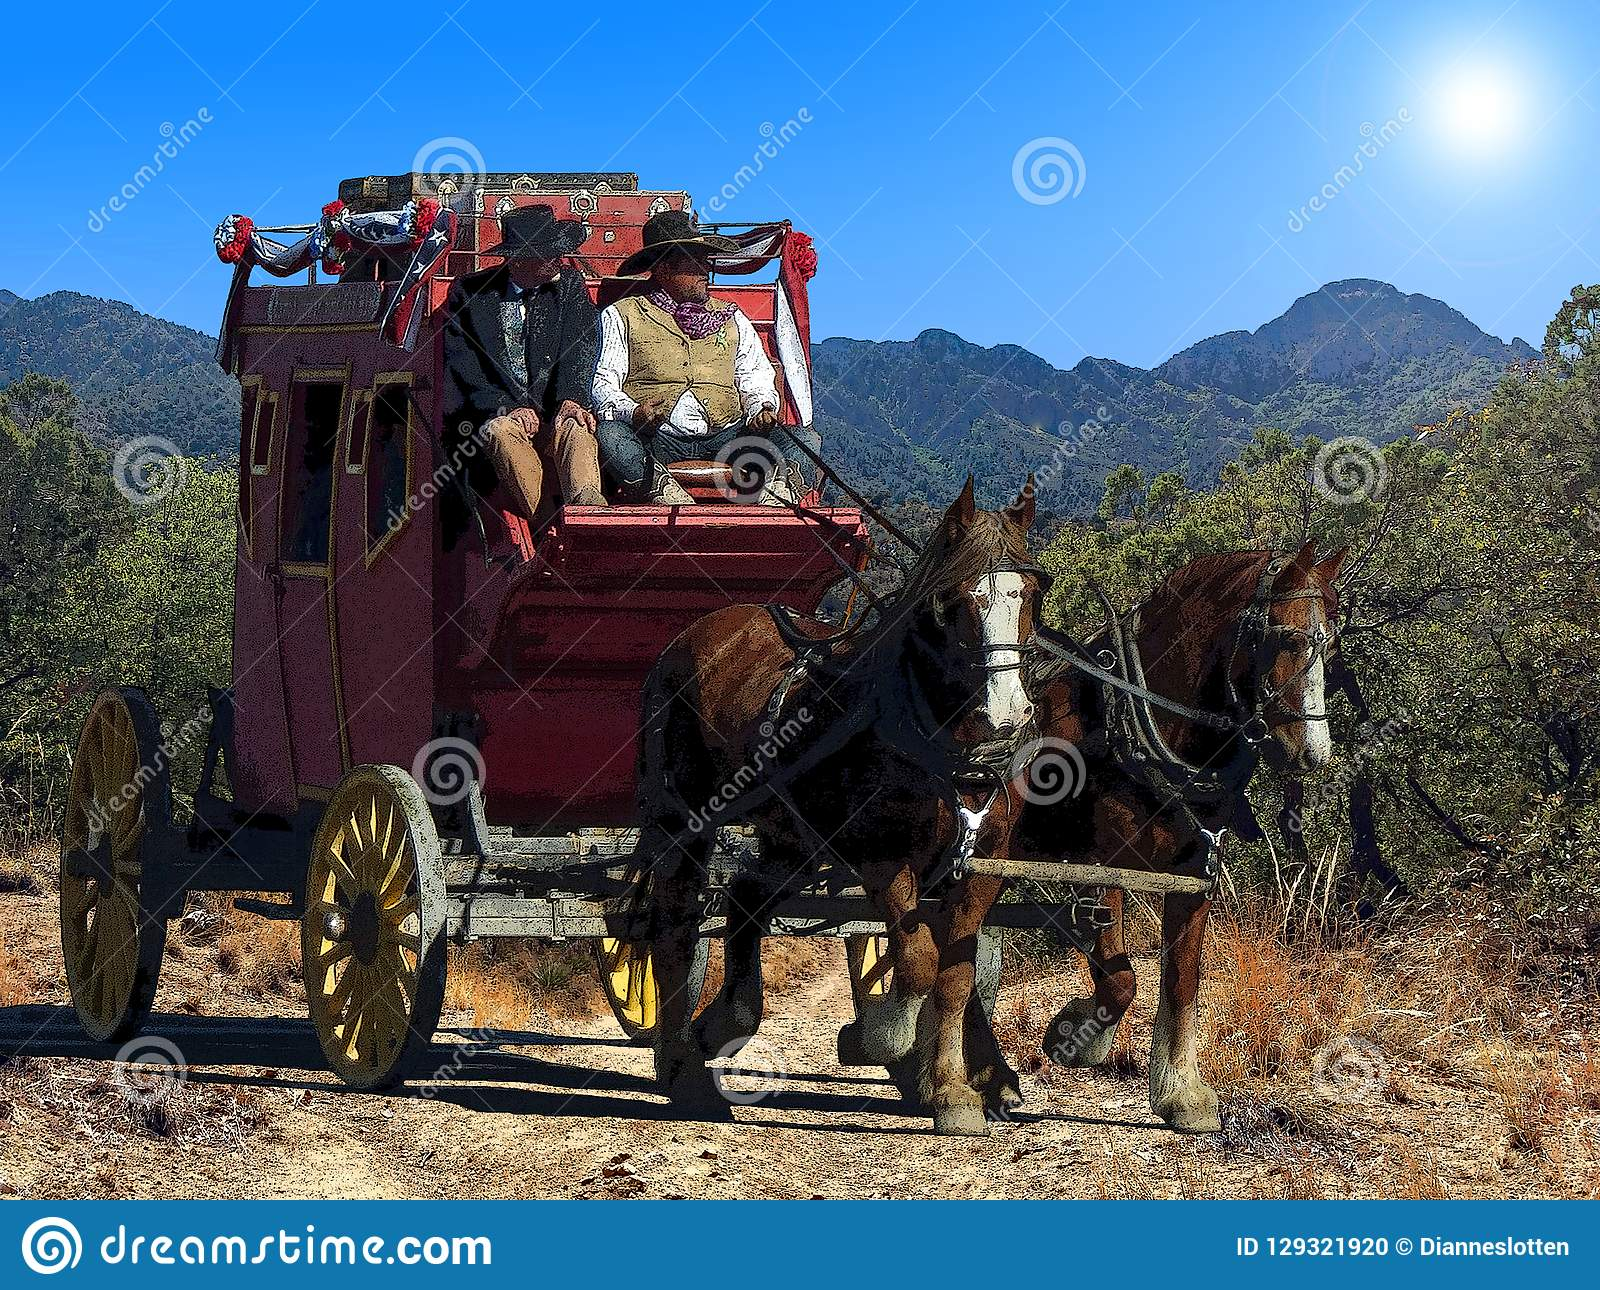 Fantasy illustration of a stagecoach traveling on a dusty trail under a hot desert sun.